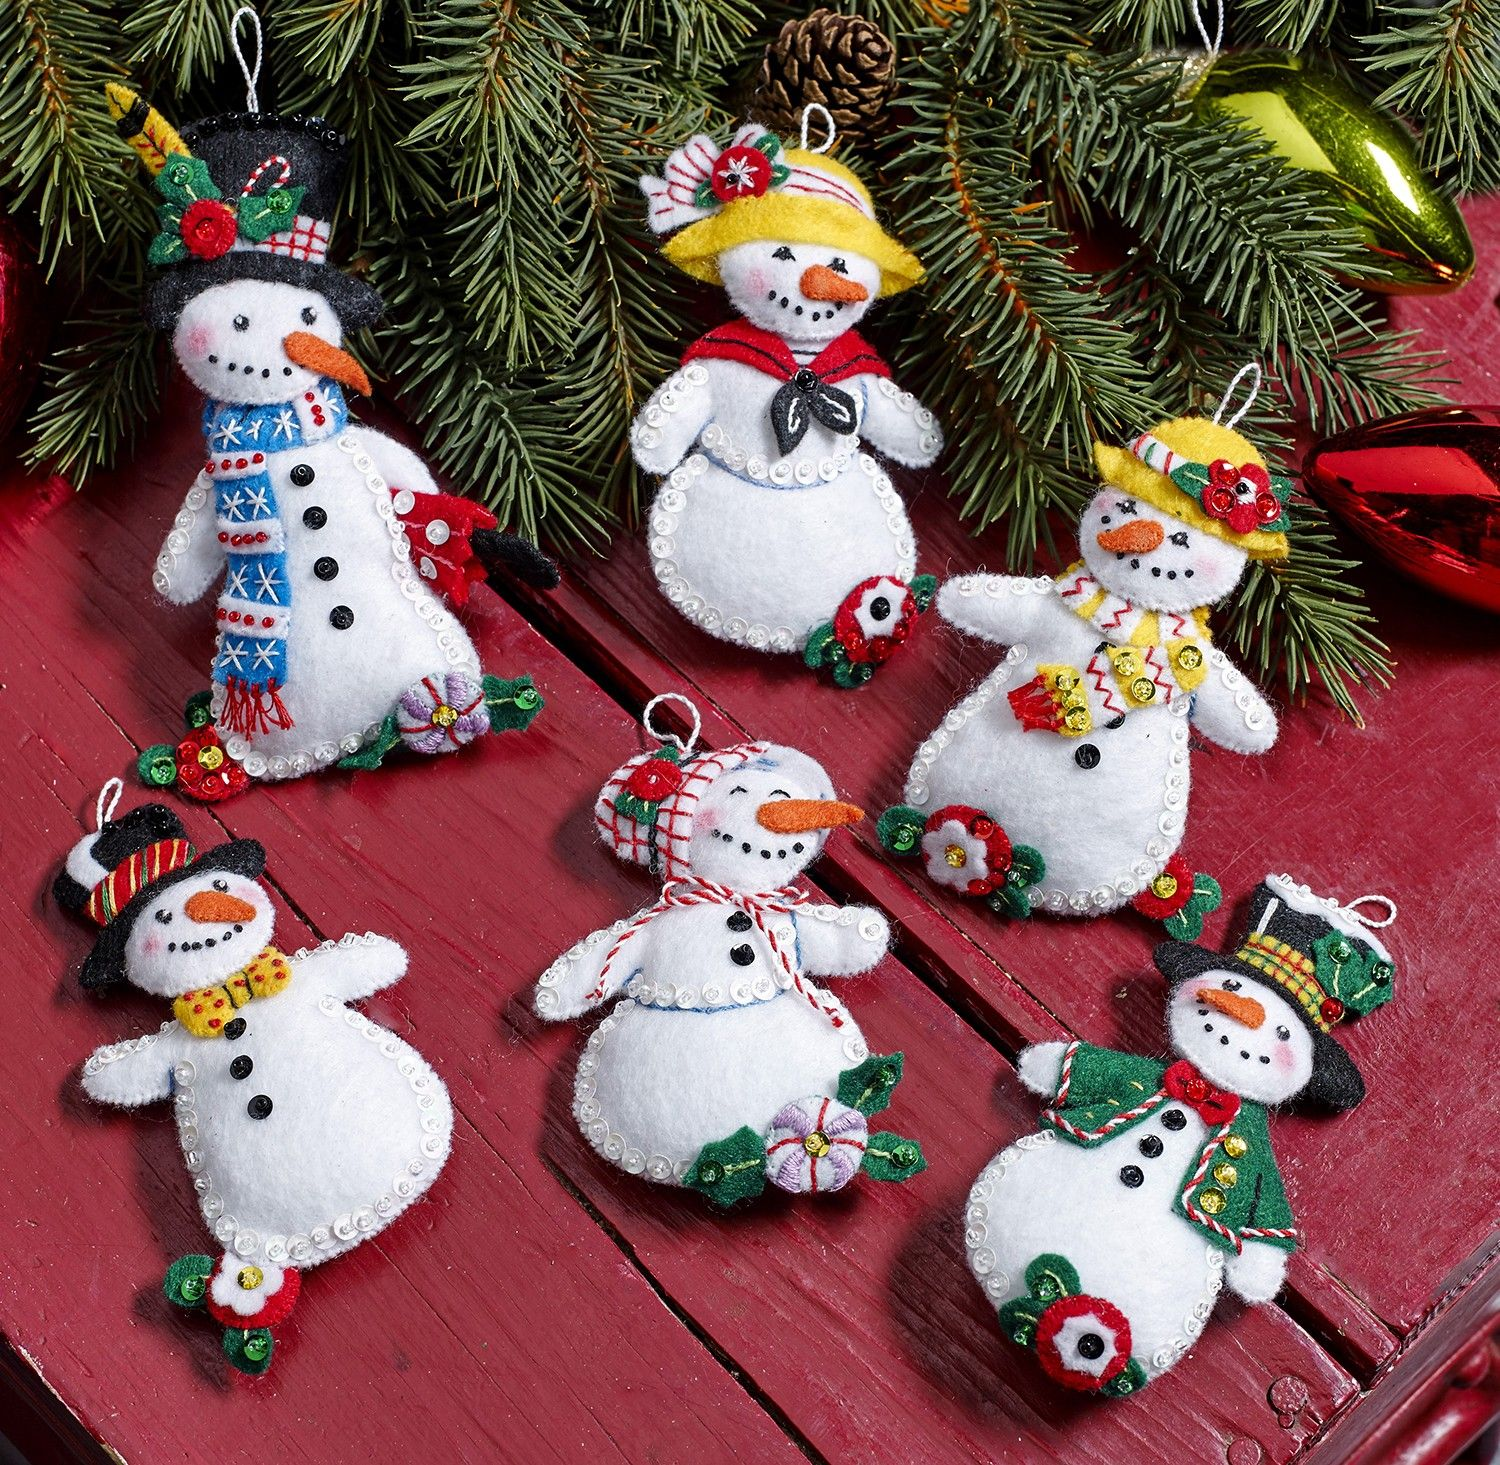 Let It Snow Bucilla Felt Ornament Kit Set Of 6 Manualidades Navidenas Manualidades Adornos Navidenos